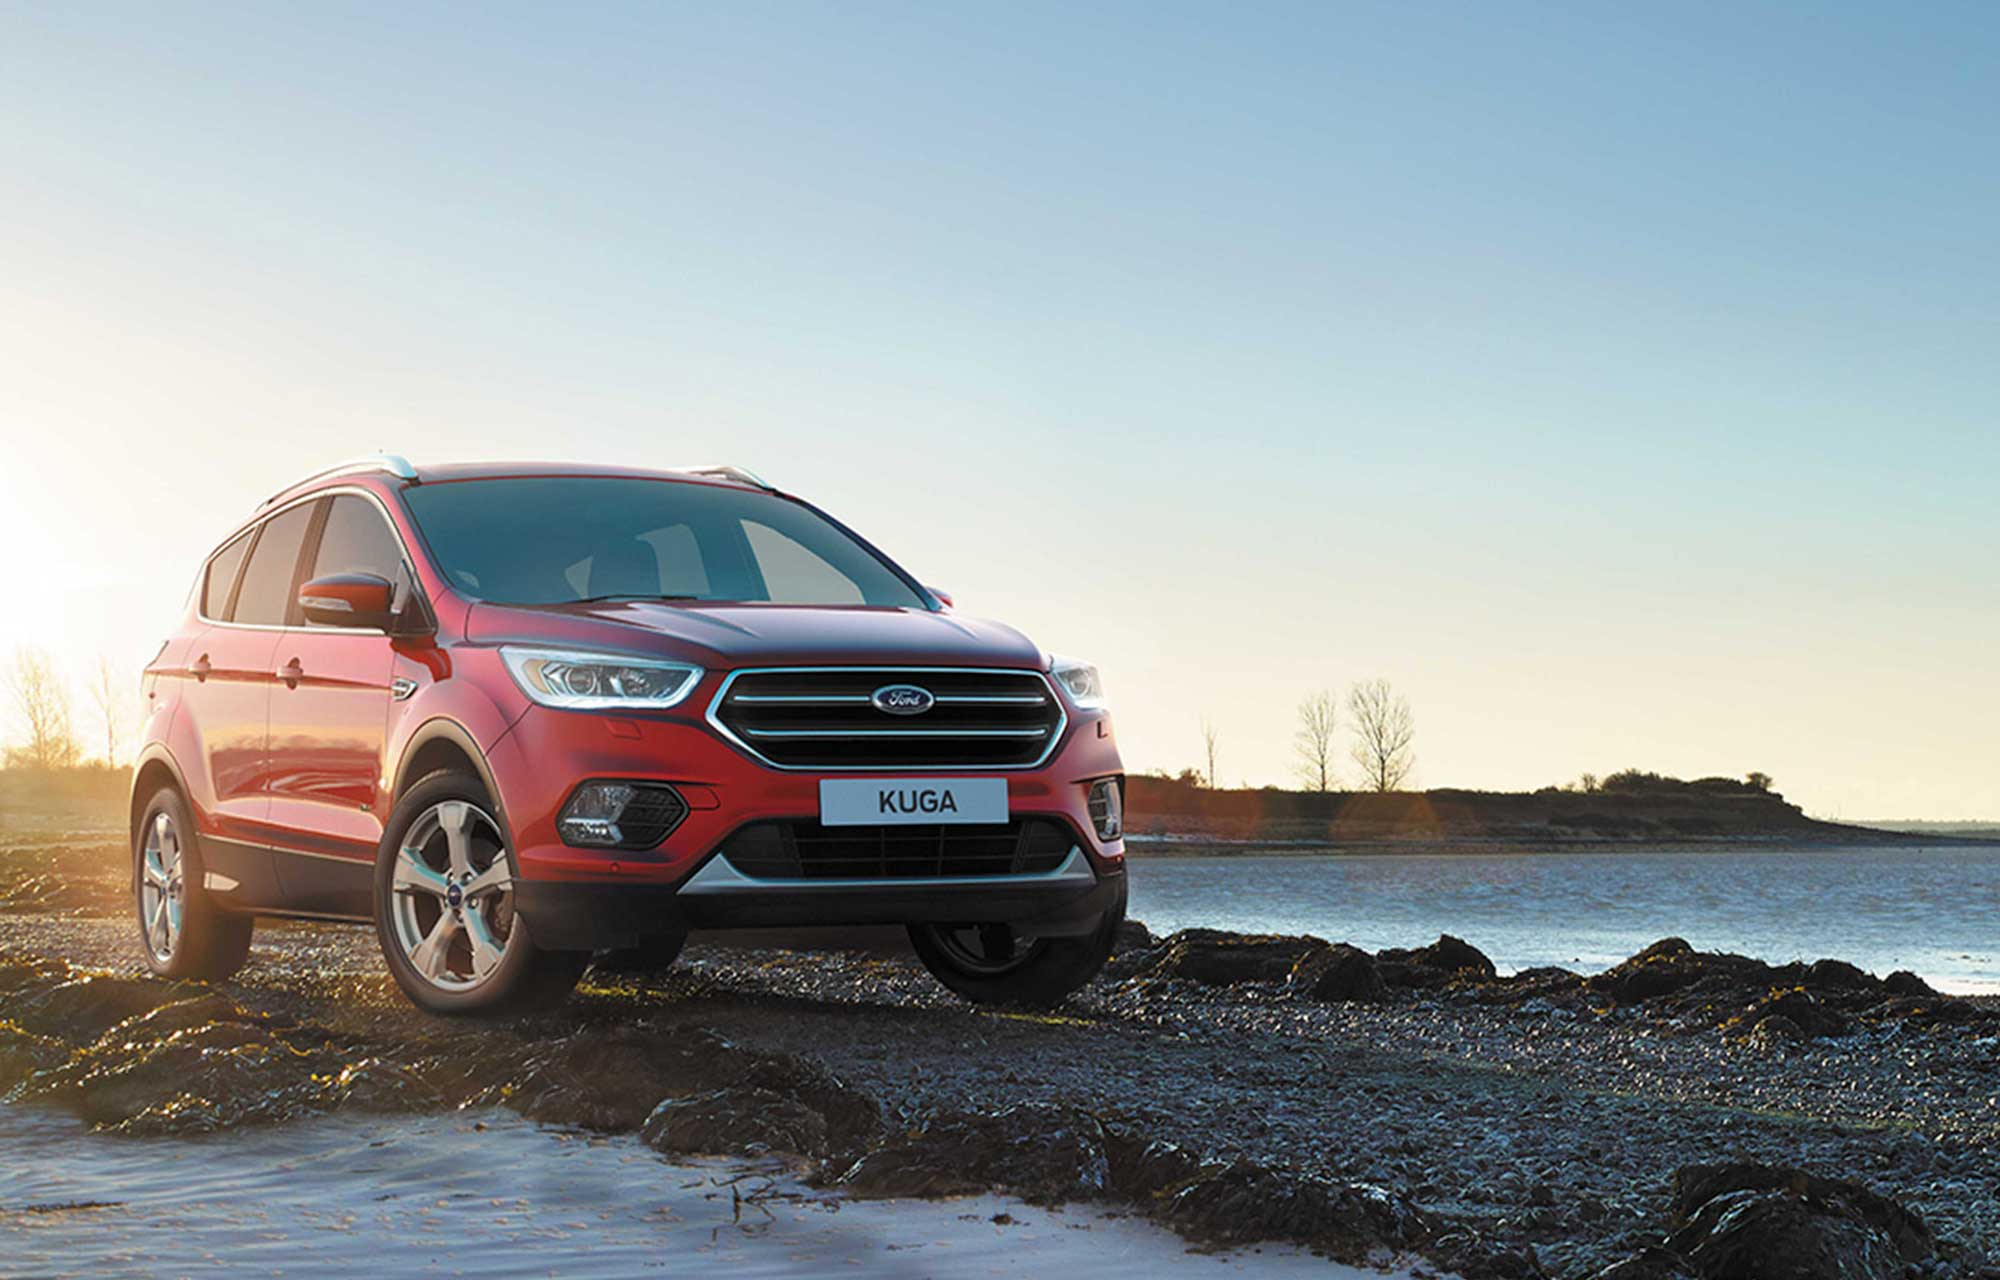 Ford Kuga at Porter Ford, Sligo